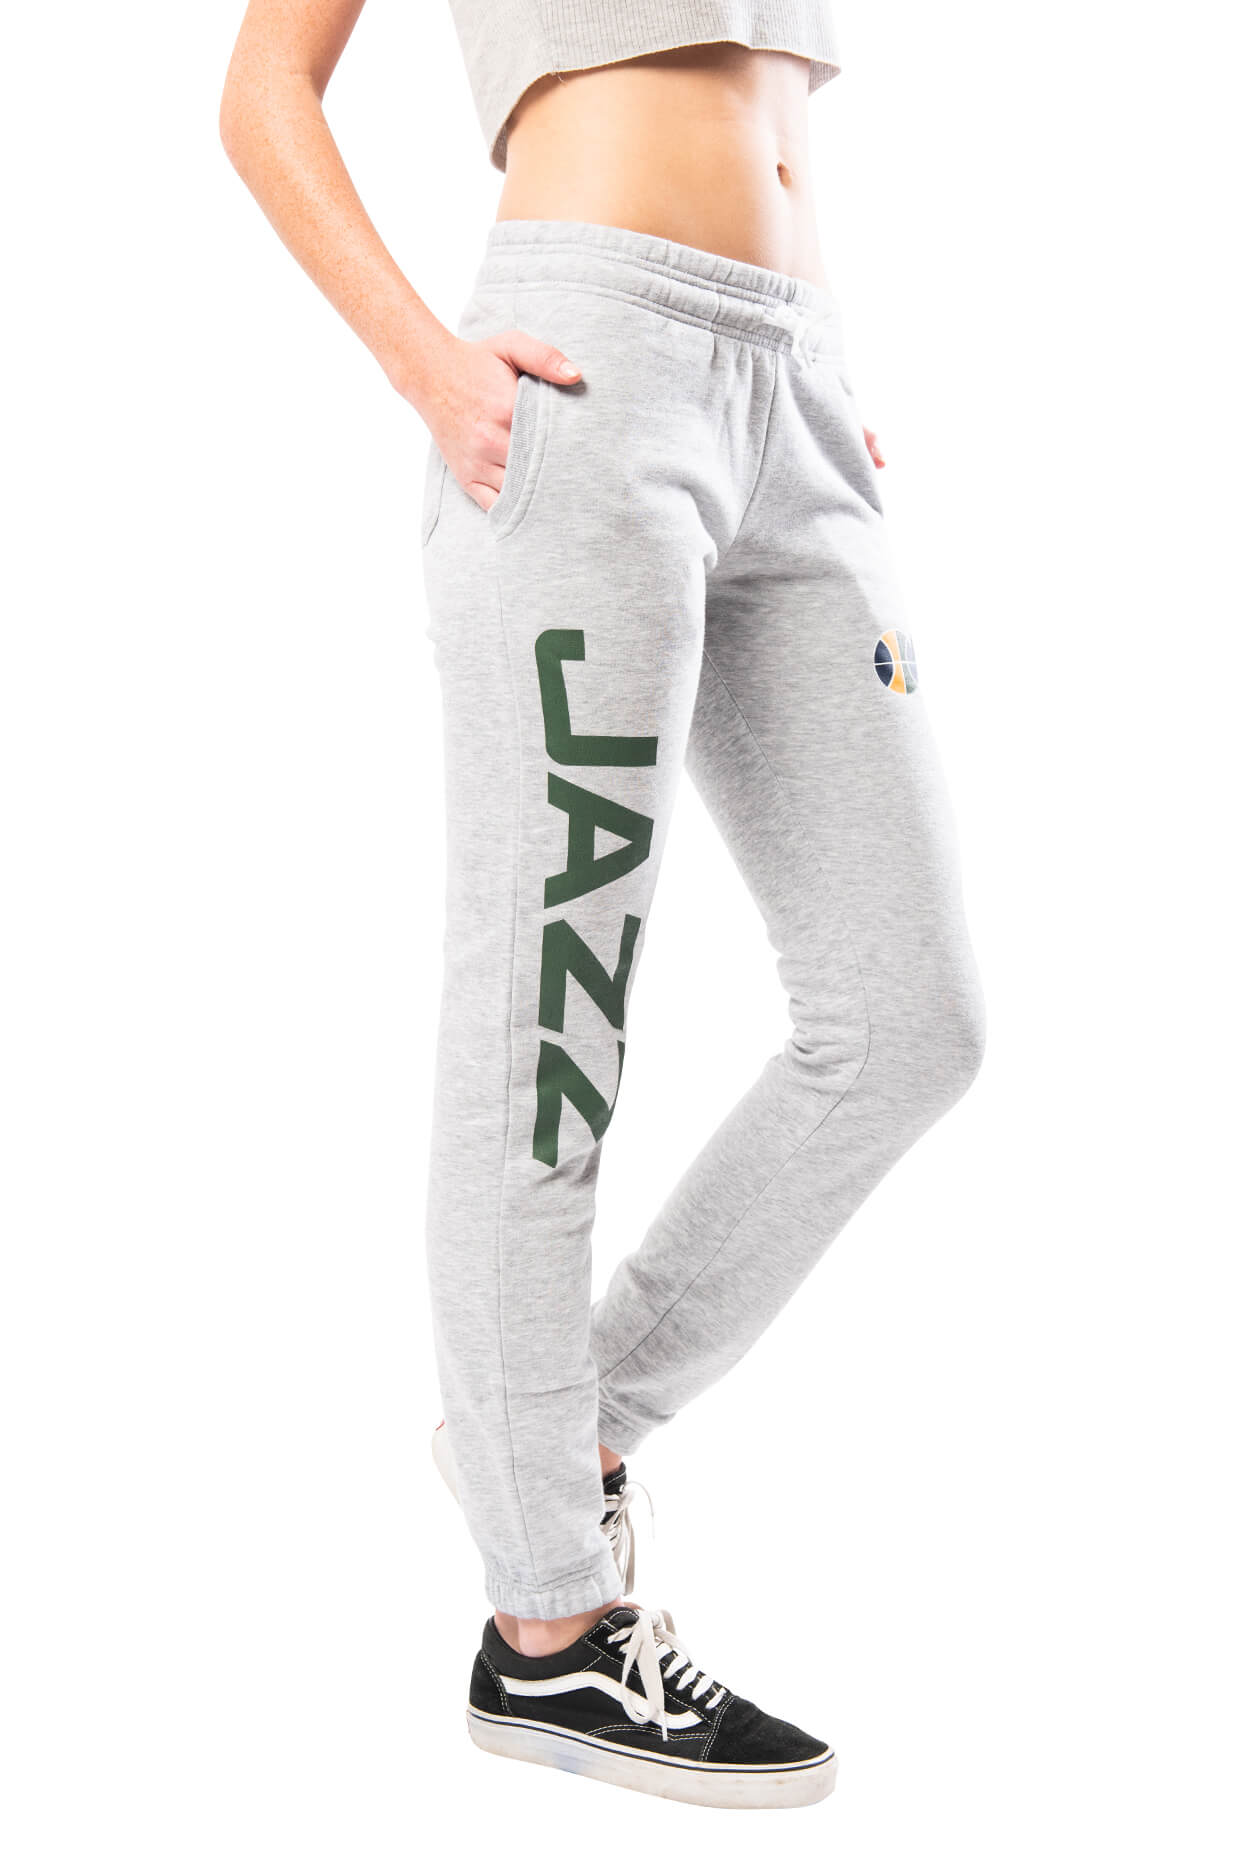 NBA Utah Jazz Women's Logo Jogger|Utah Jazz